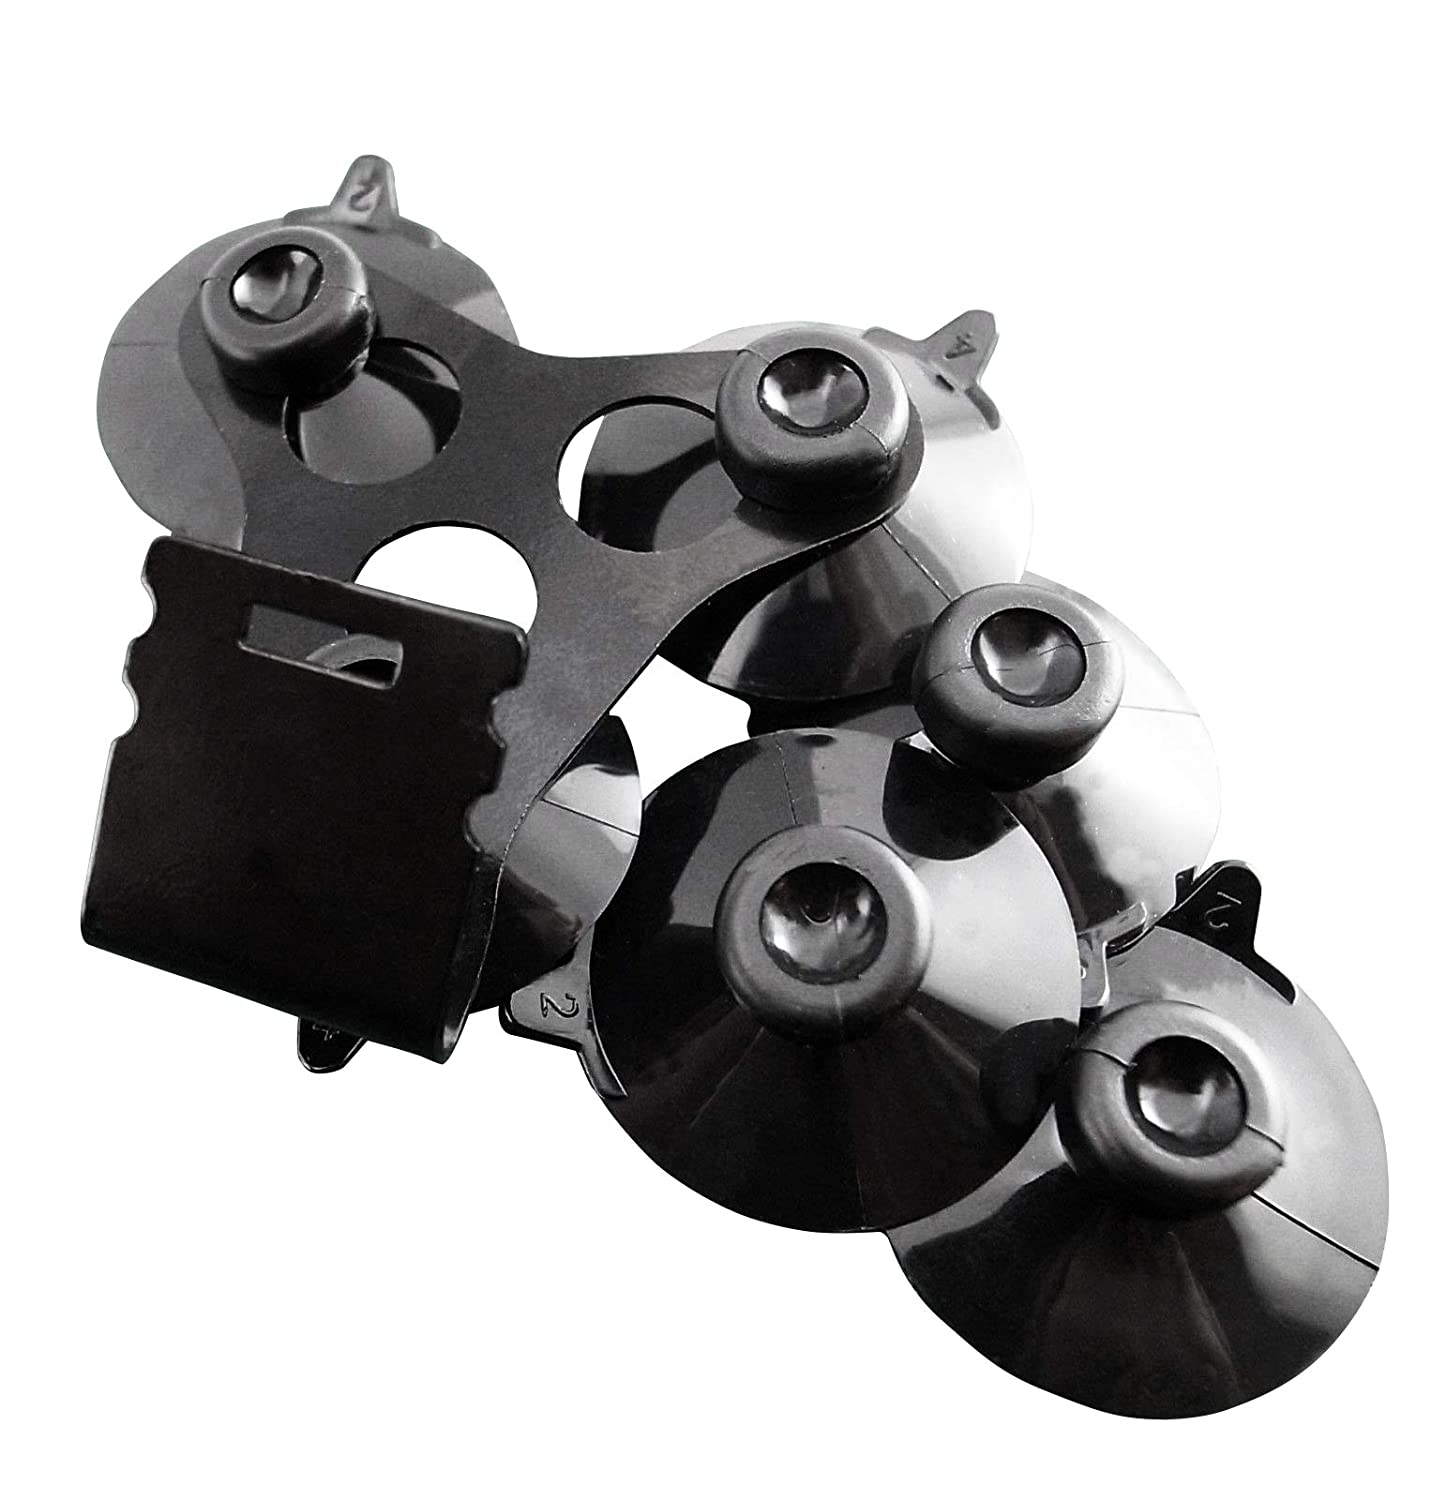 Amazon.com: Noa Store 1 x Windshield Mount Bracket + 6 Black Cup for All The Cobra Radar Detector Models: Car Electronics